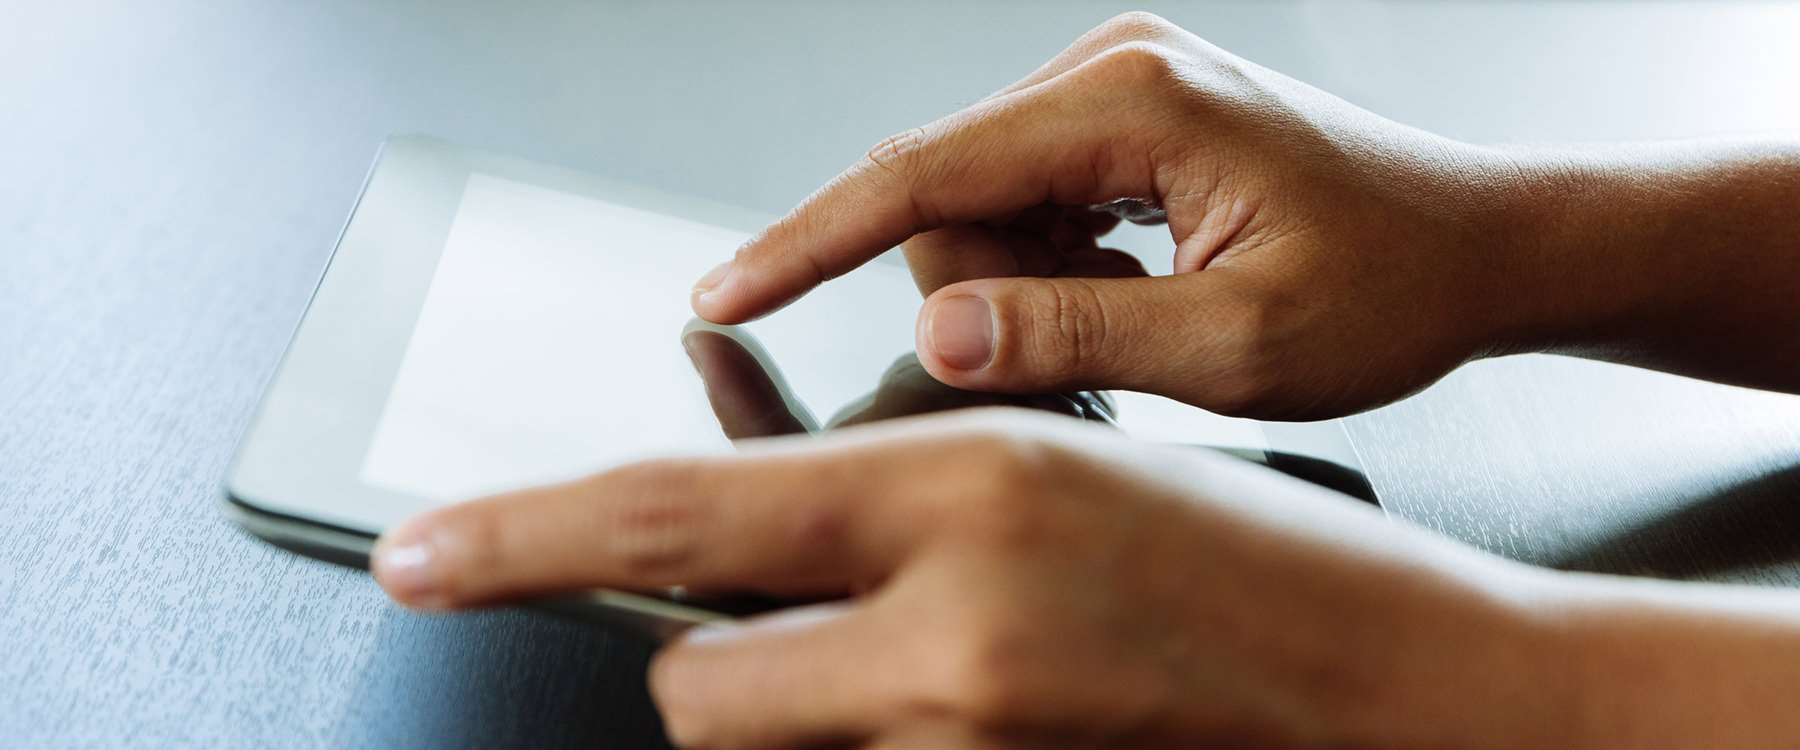 close up of hands using a tablet